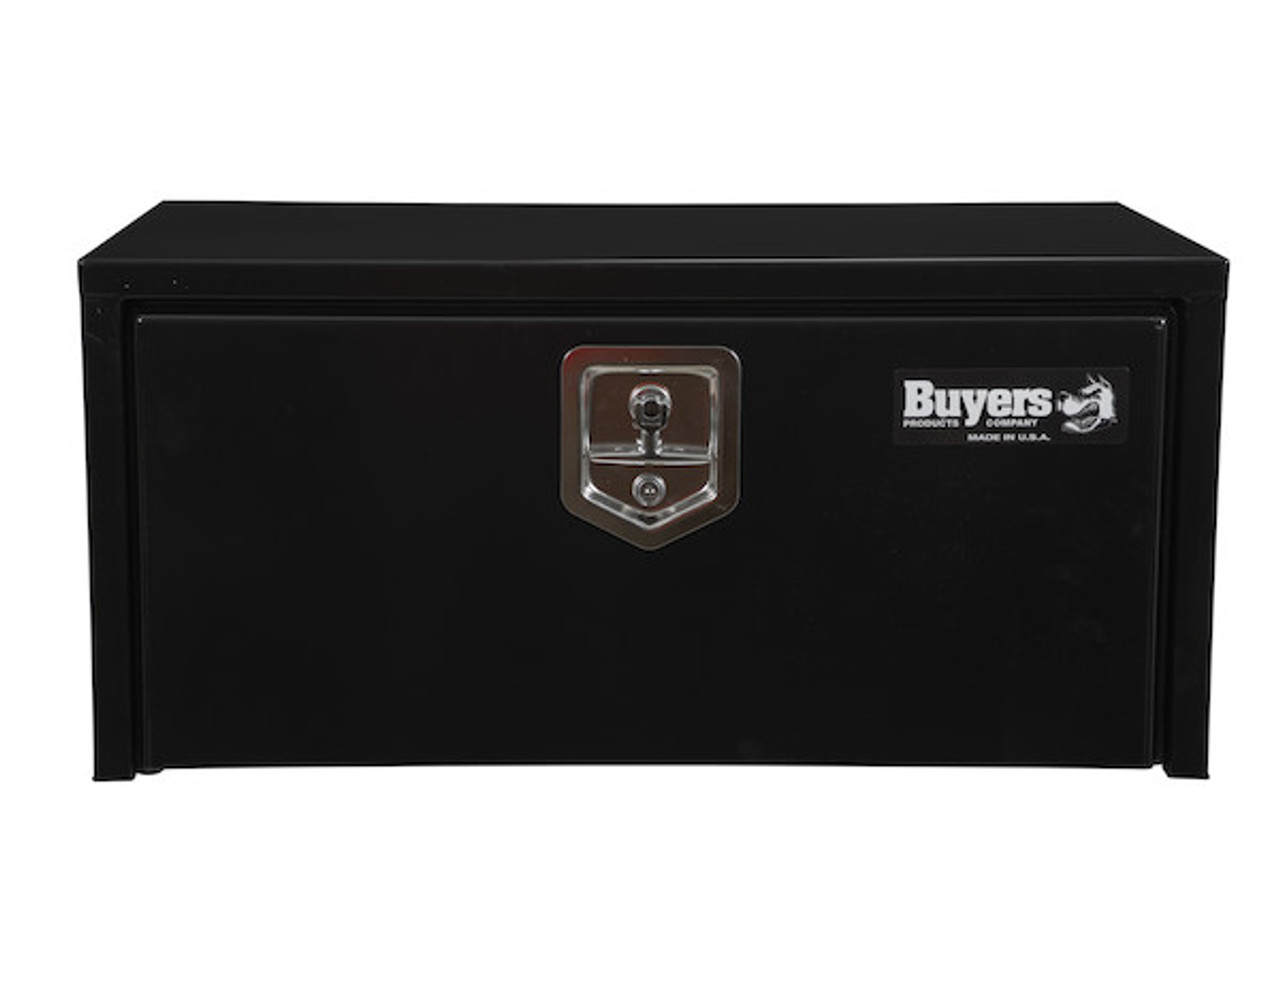 "1703304 BUYERS PRODUCTS BLACK STEEL UNDERBODY TRUCK TOOL BOX WITH BUILT-IN SHELF 14""HX16""DX30""W Picture # 1"